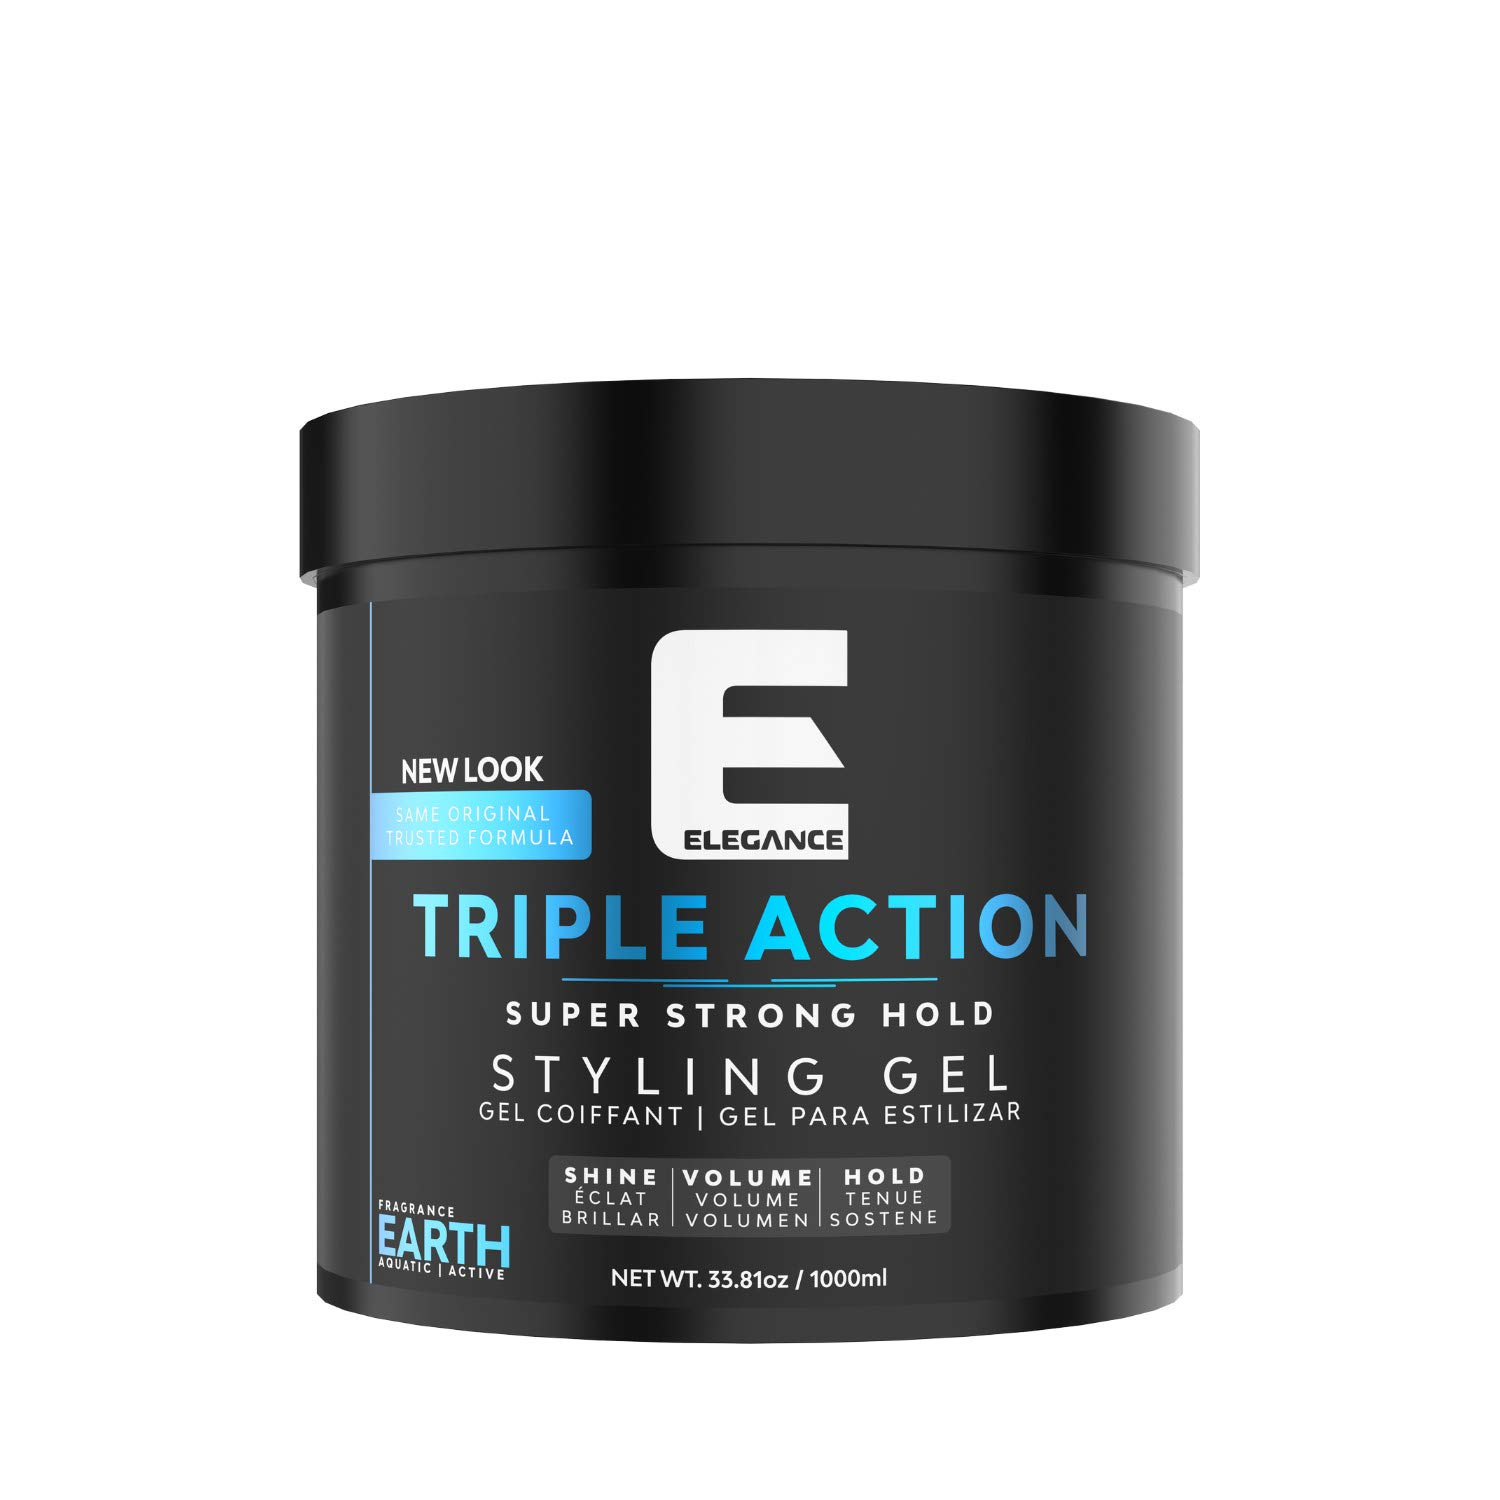 ELEGANCE GEL Triple Action Hair Gel, Blue, 33.8 Oz